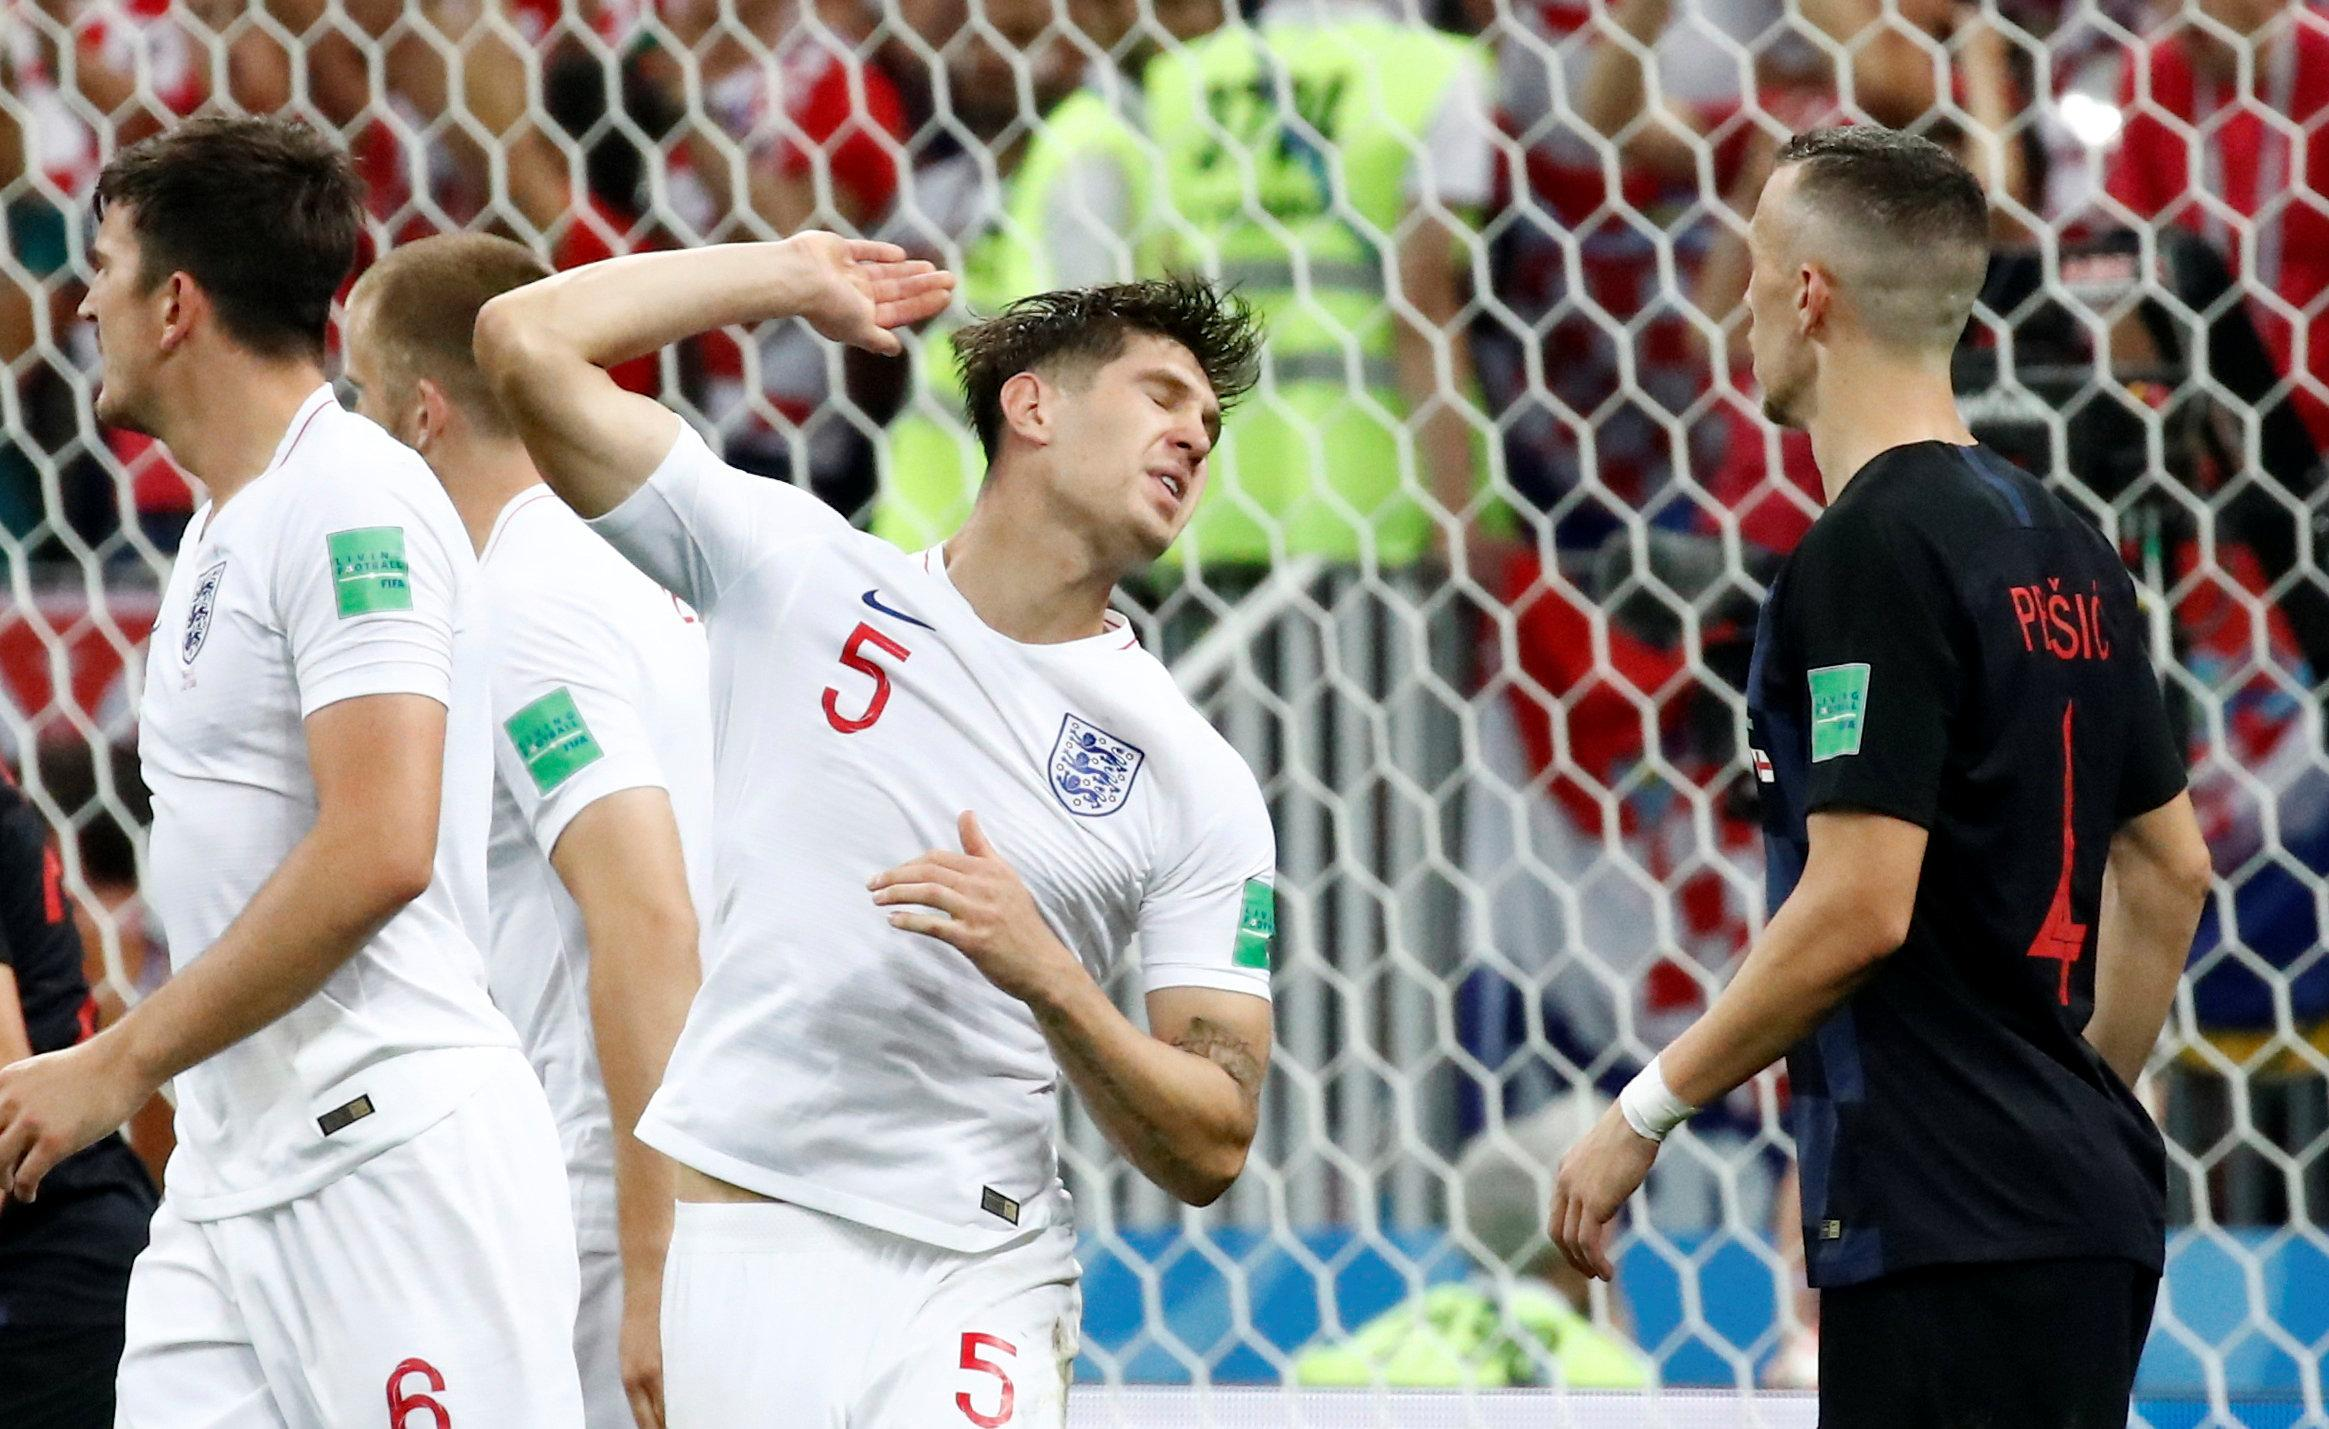 We were all John Stones at this point